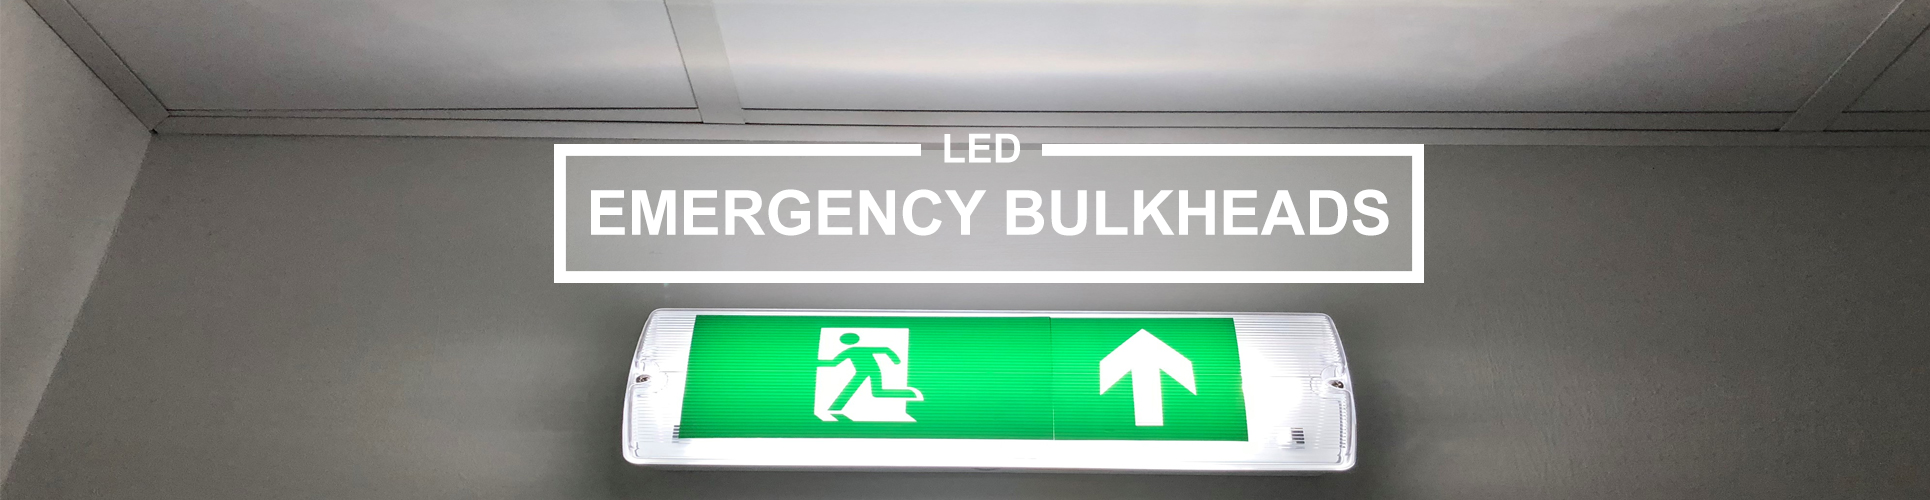 Emergency bulkheads